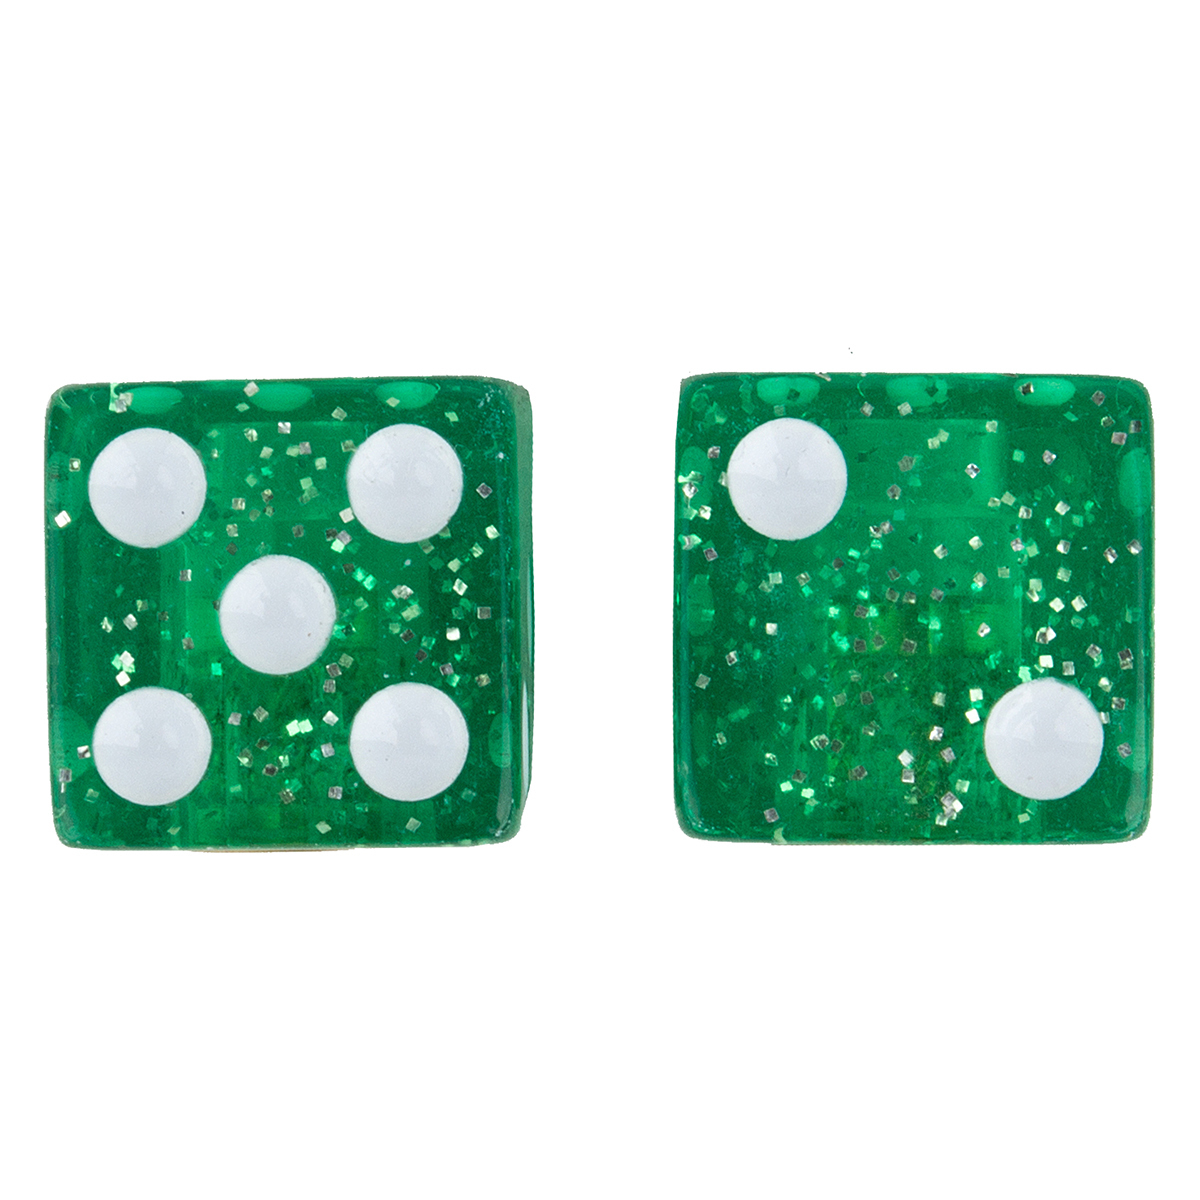 VALVE CAPS TRICK TOP DICE-GLITTER GREEN